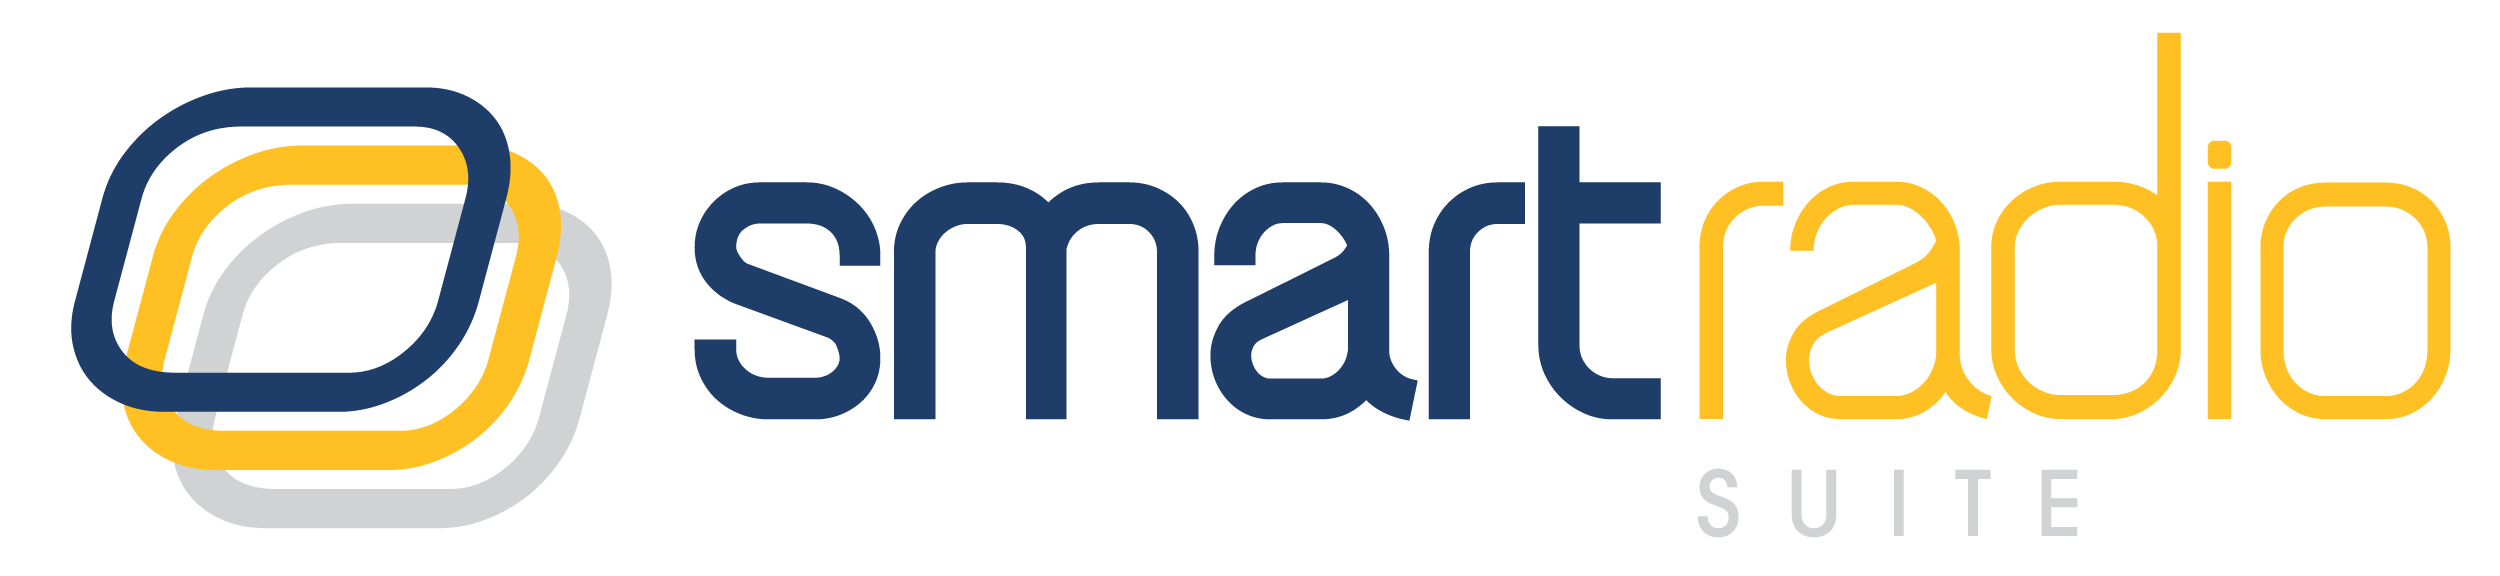 smartradio SUITE